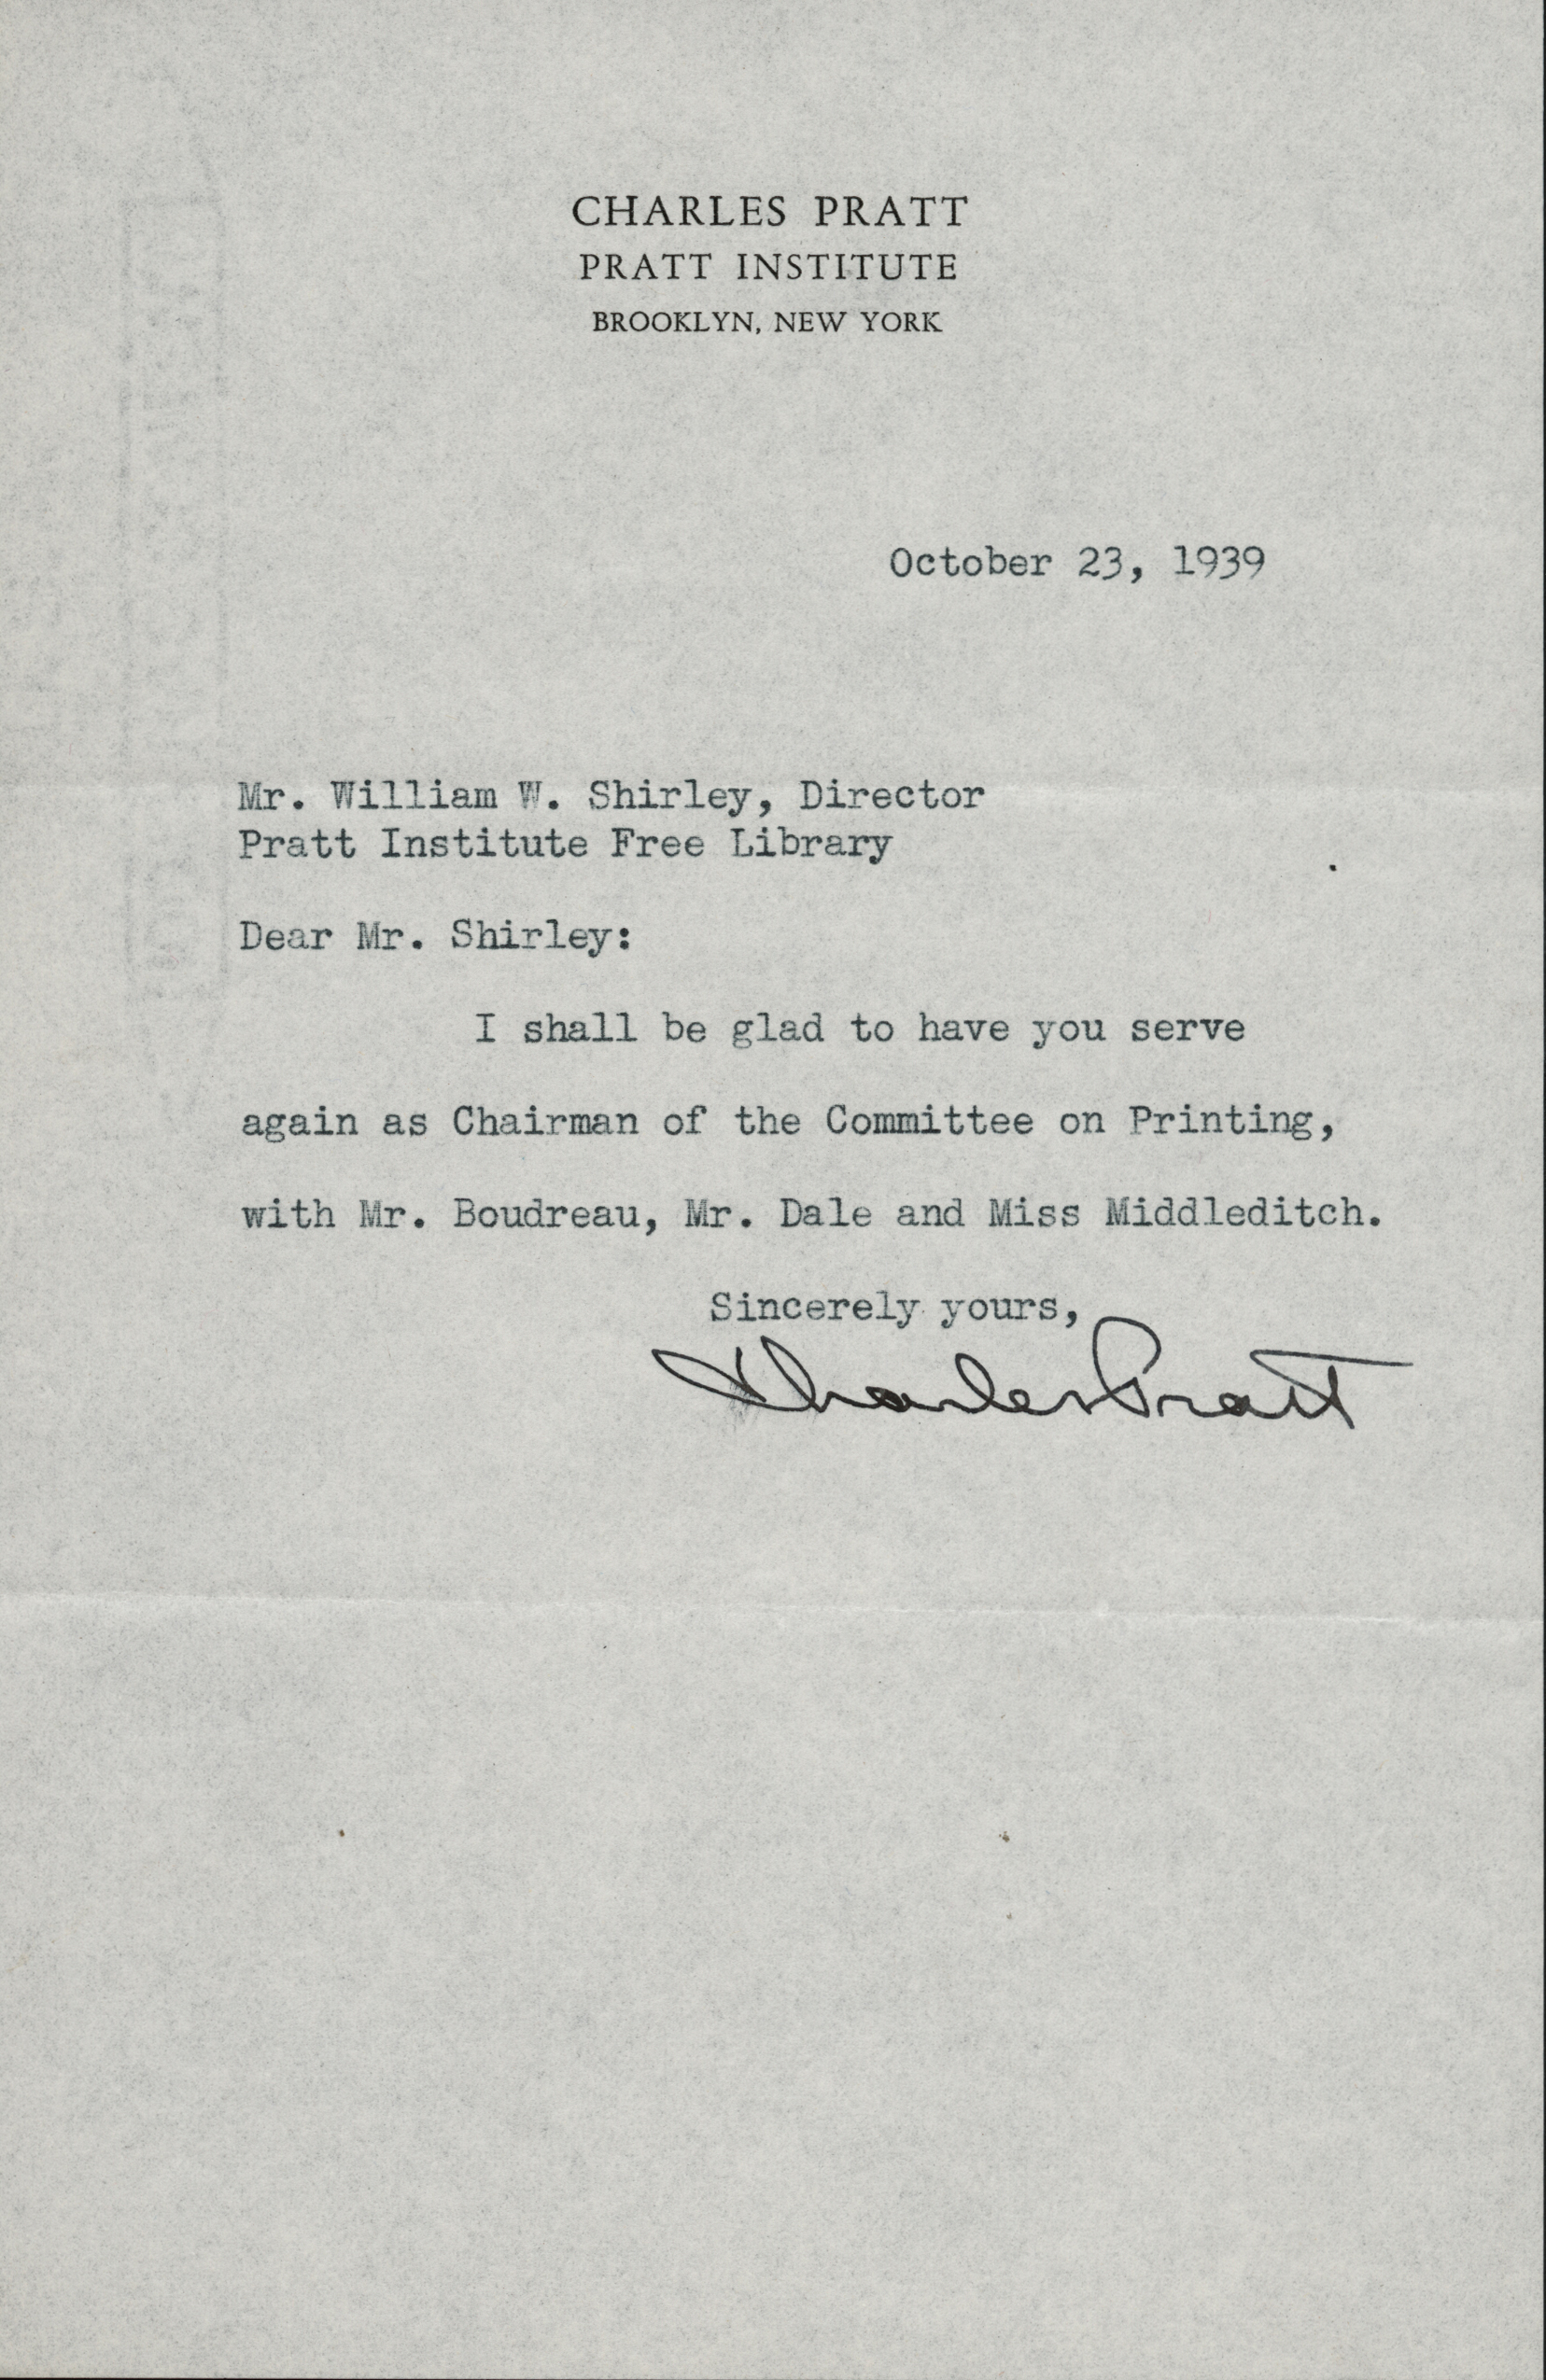 Typewritten letter from Charles Pratt to William W. Shirley, director of the Pratt Institute Free Library